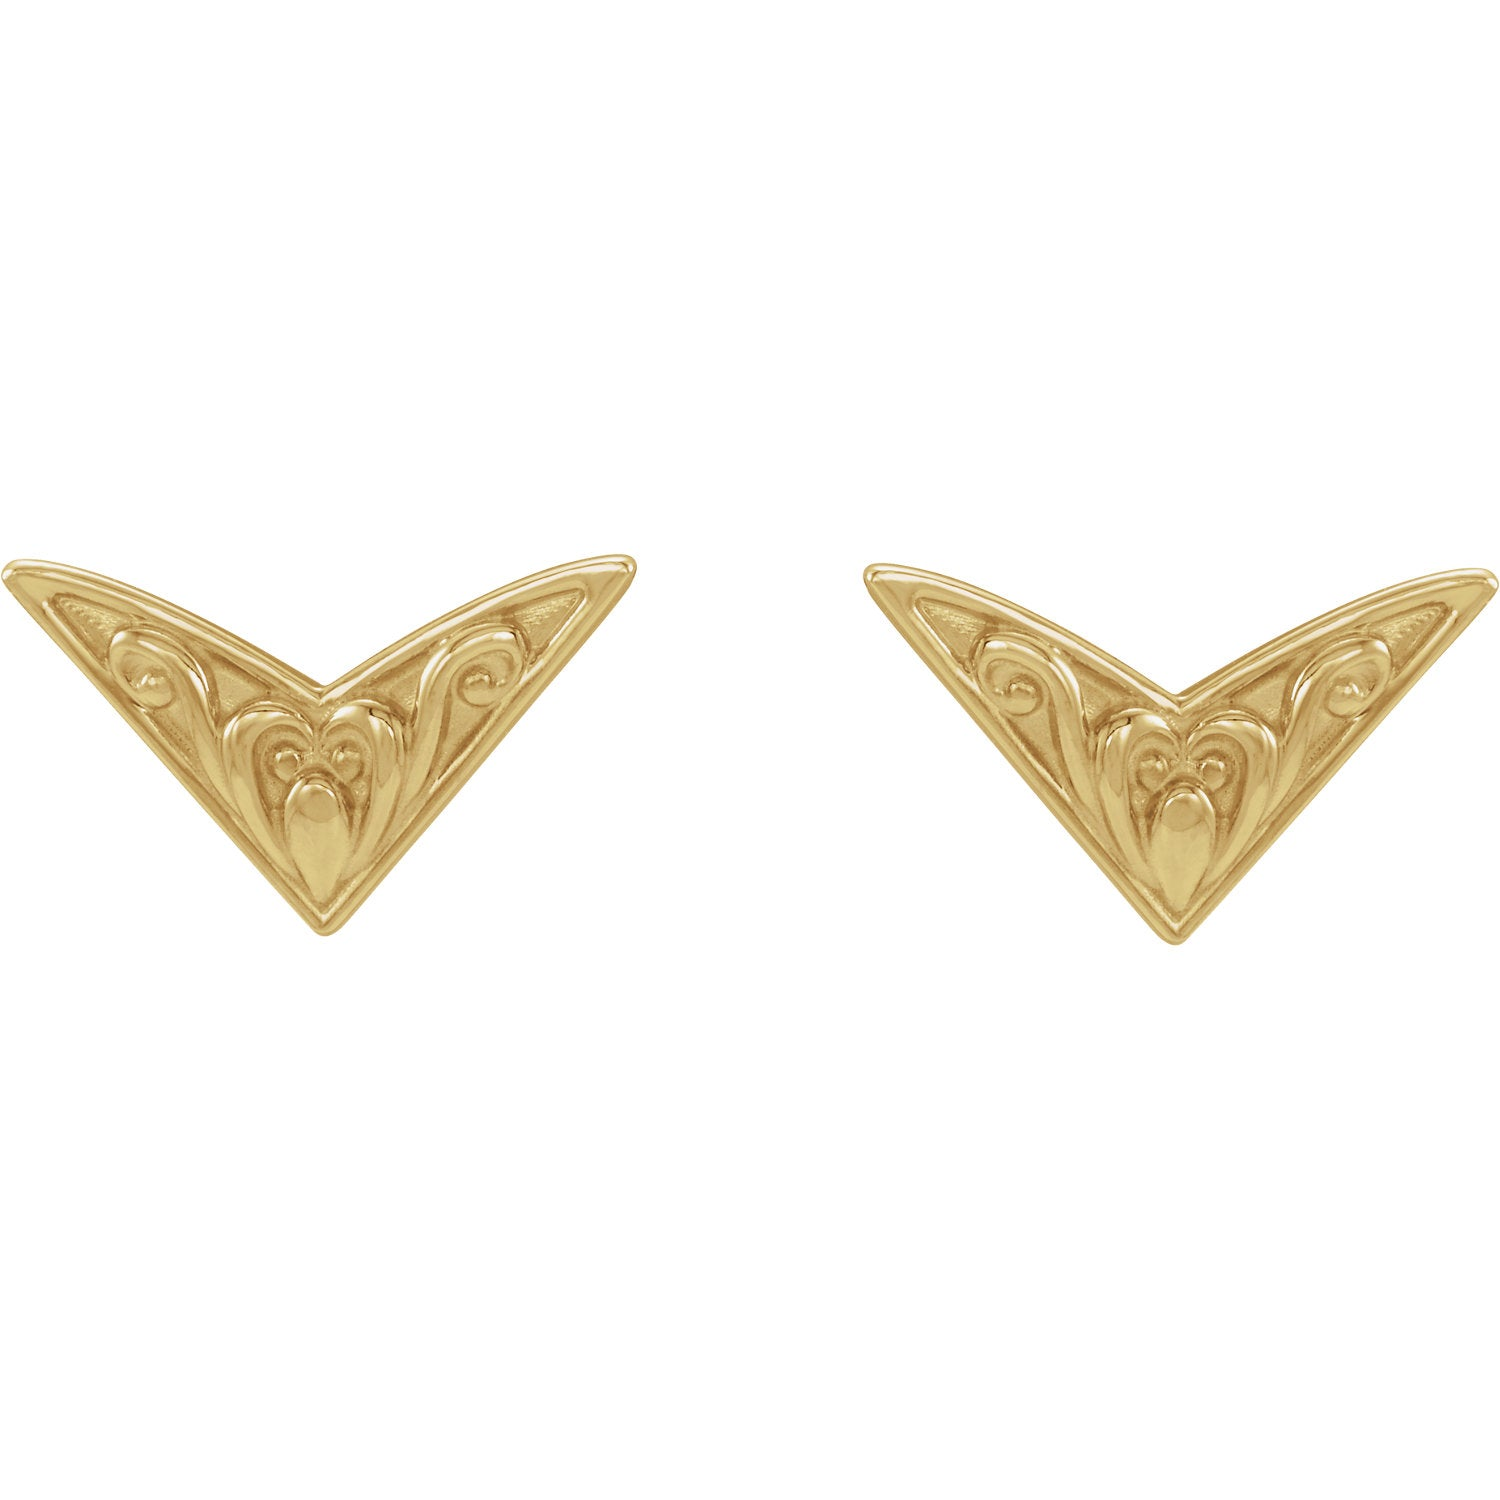 Sculptural-Inspired Earrings